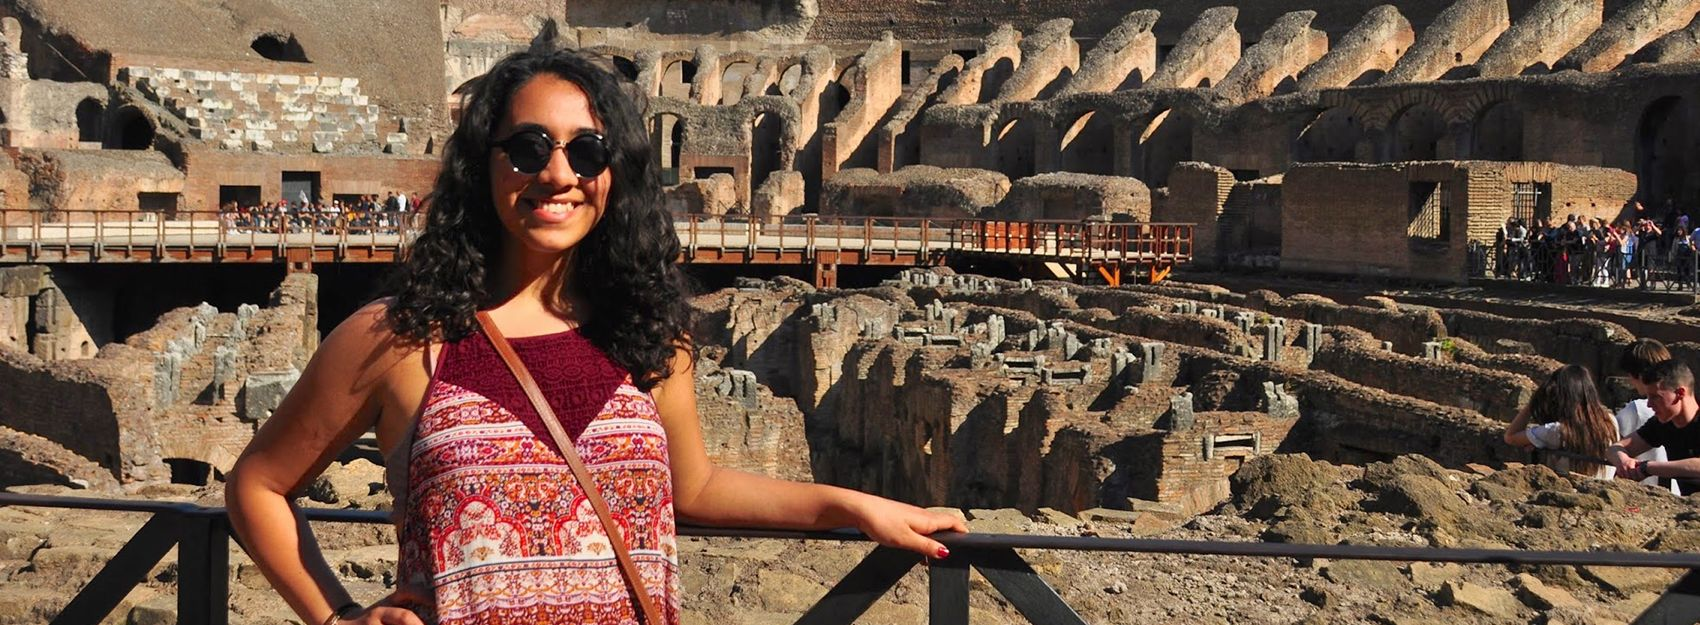 A Rome study abroad student at the Colosseum